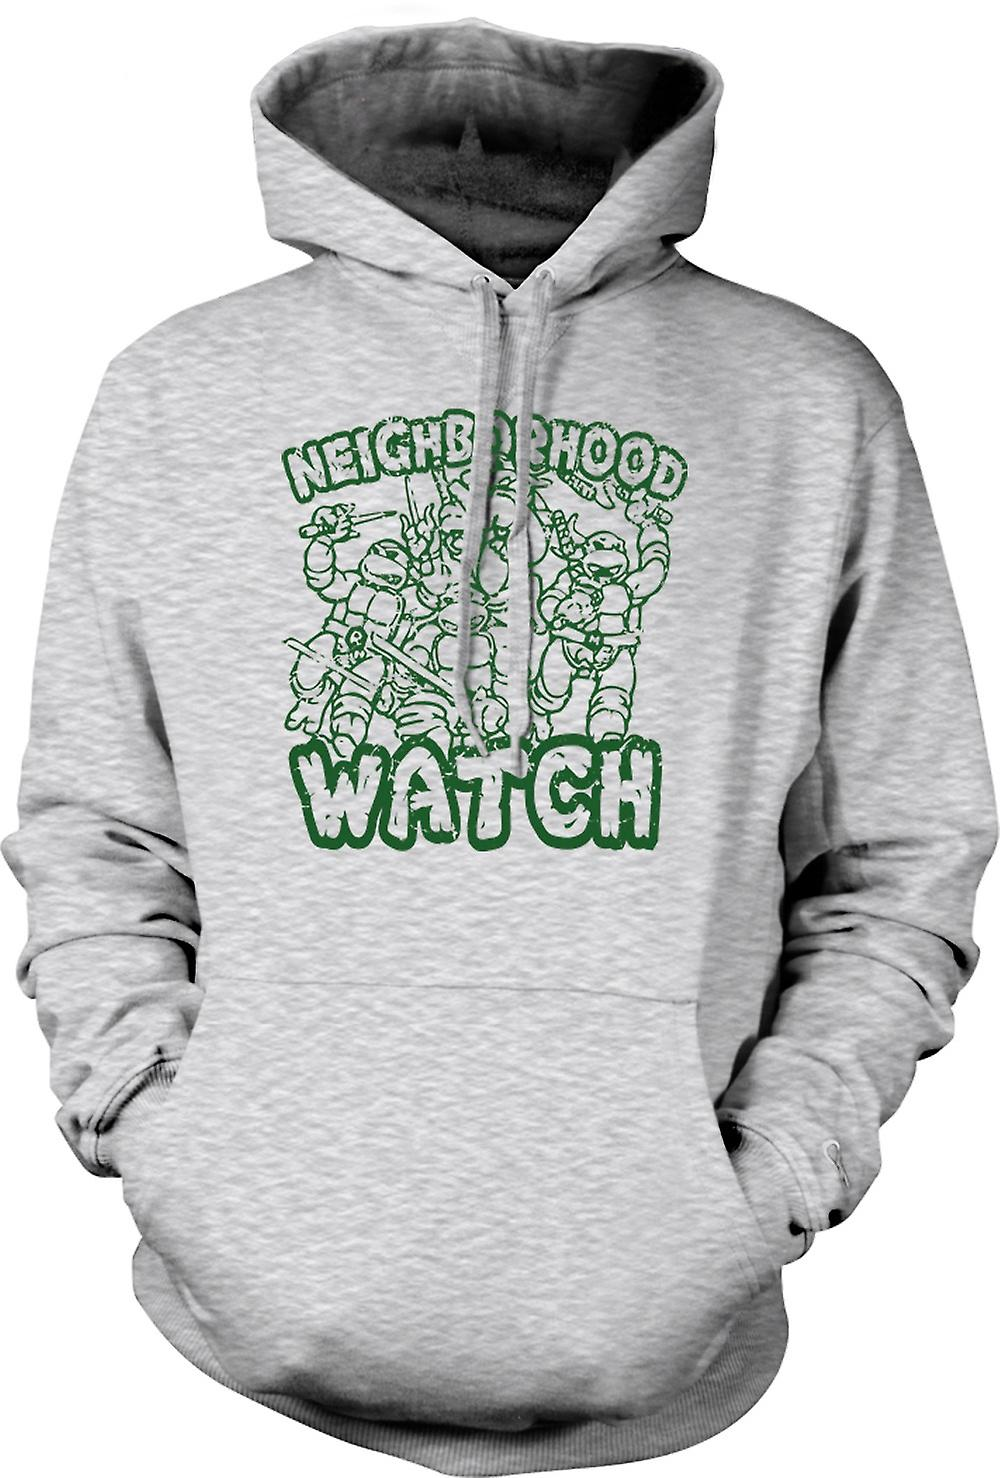 Mens Hoodie - Teenage Mutant Ninja Turtles - Neighborhood Watch